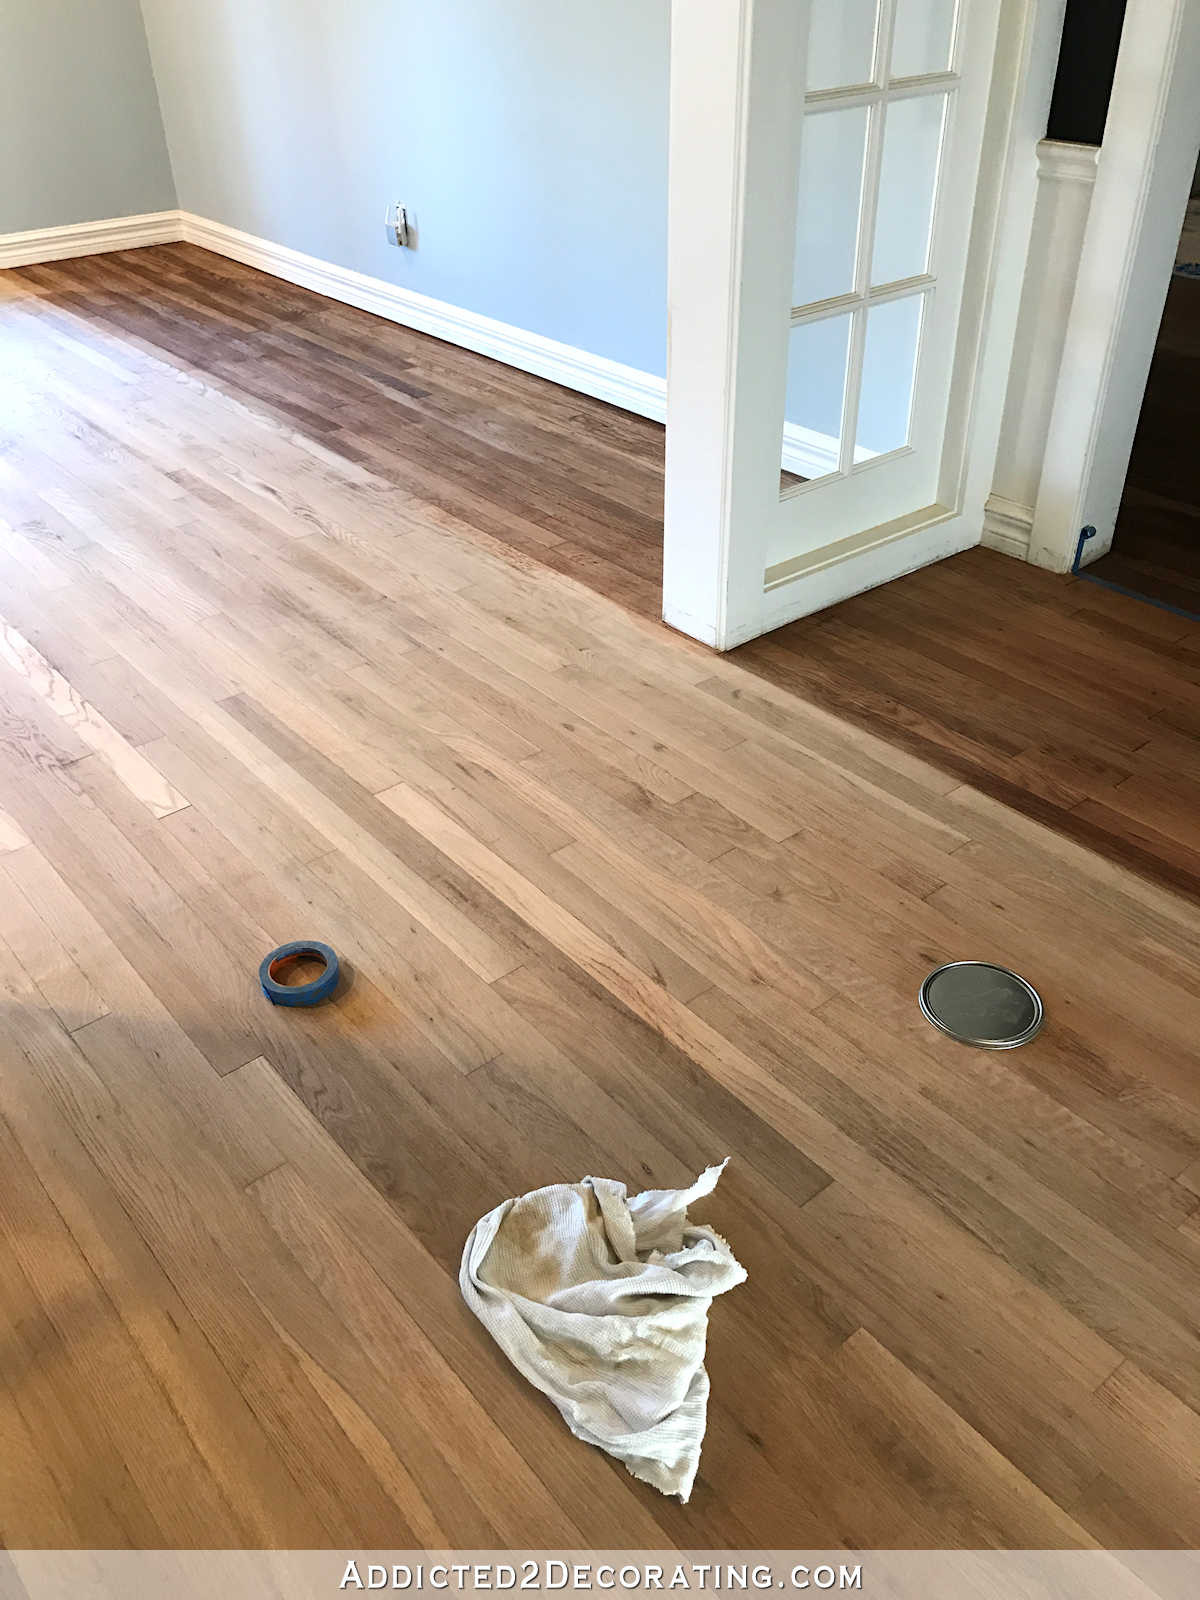 how to refinish hardwood floors yourself of adventures in staining my red oak hardwood floors products process inside staining red oak hardwood floors 3 entryway and music room